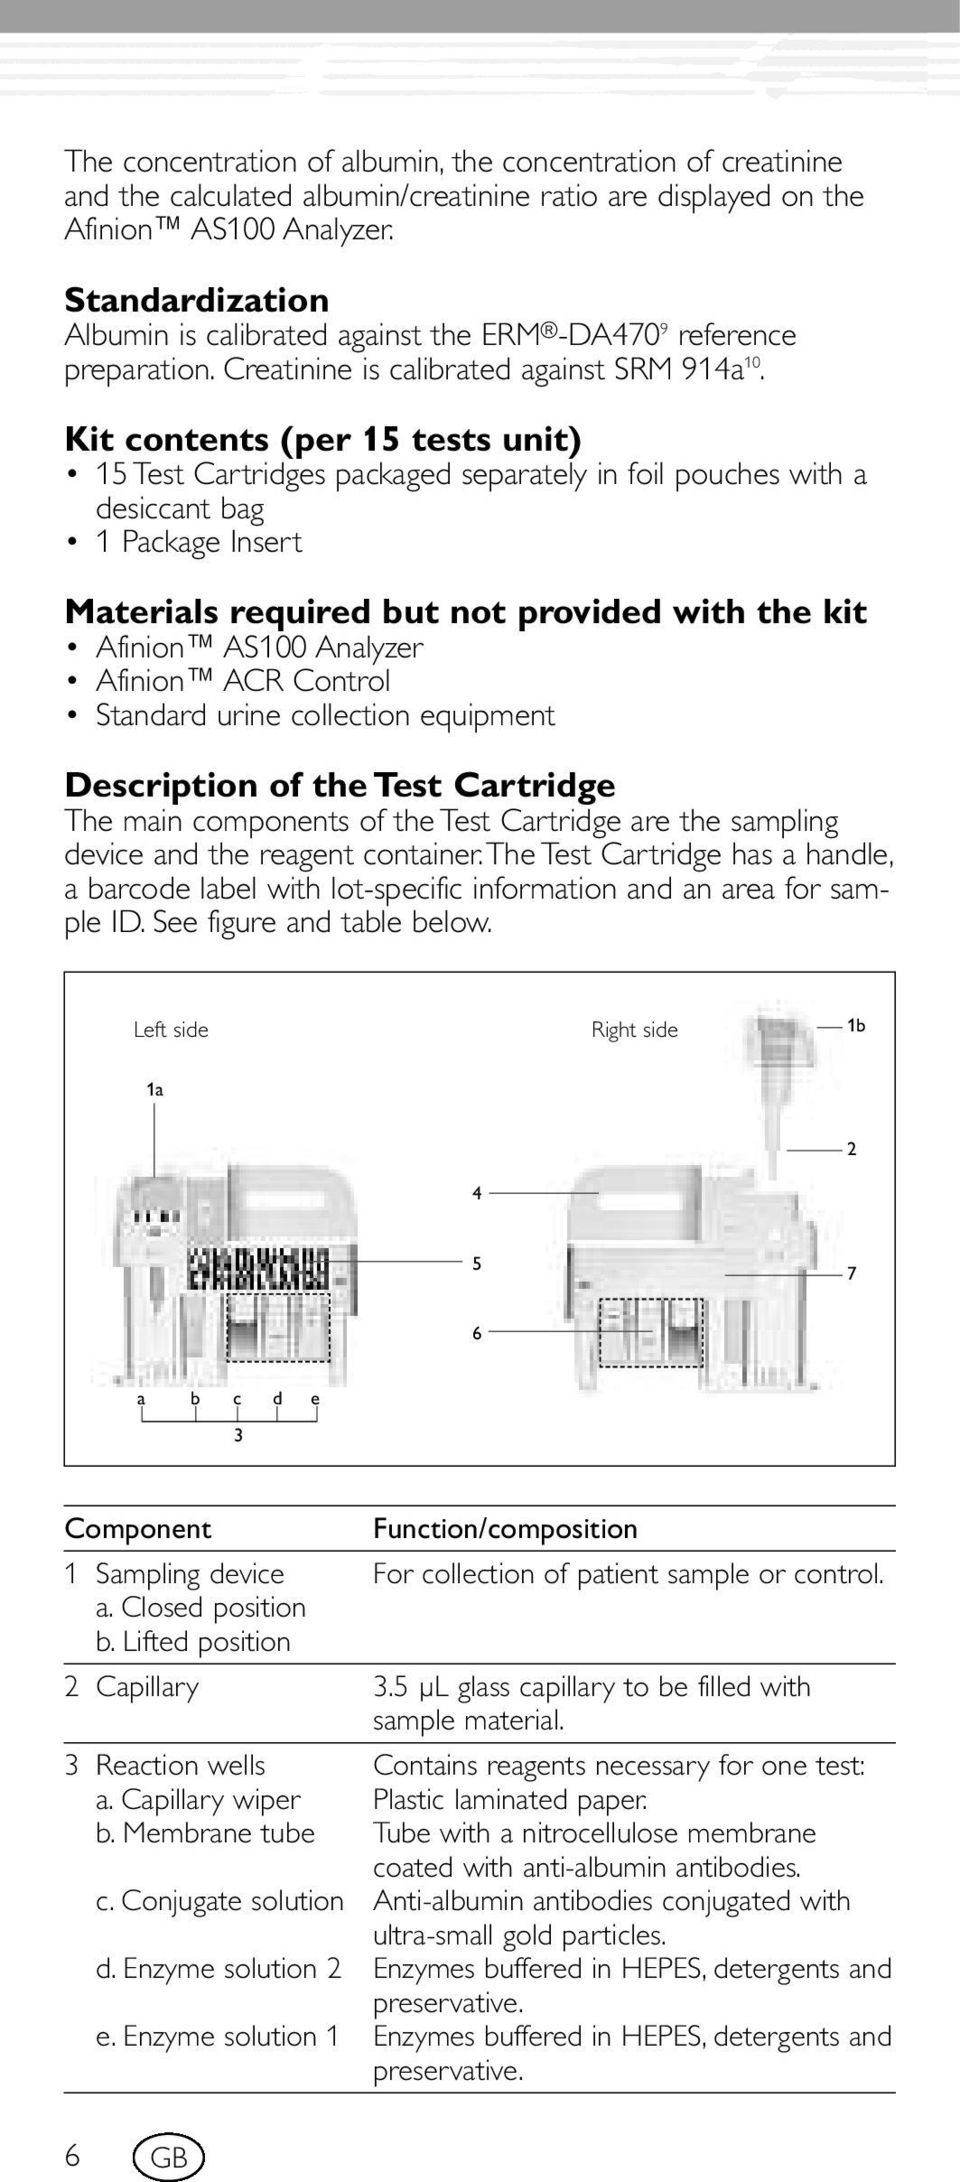 Kit contents (per 15 tests unit) 15 Test Cartridges packaged separately in foil pouches with a desiccant bag 1 Package Insert Materials required but not provided with the kit Afinion AS100 Analyzer